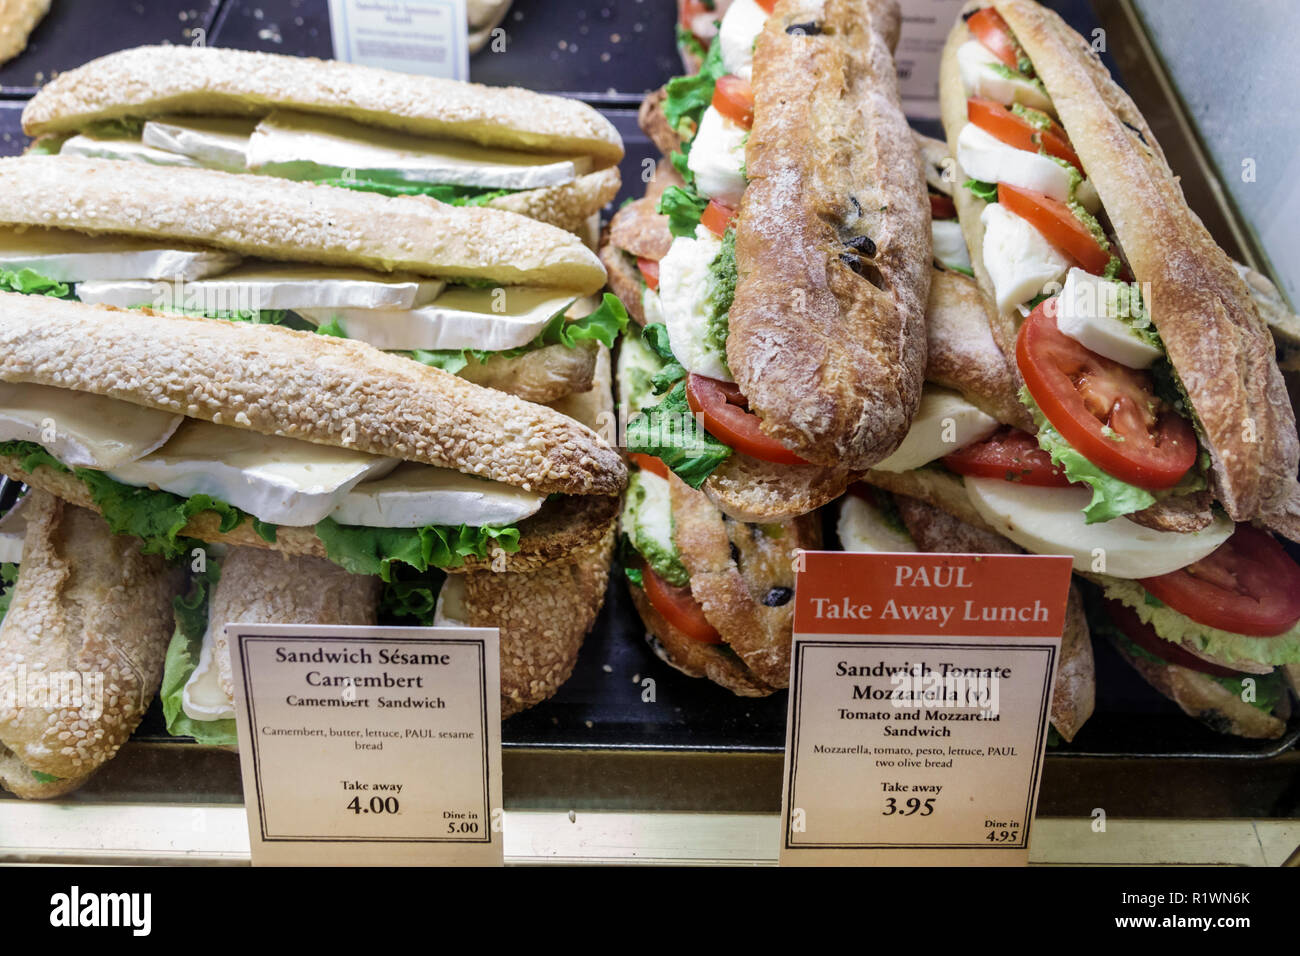 London England United Kingdom Great Britain South Kensington PAUL Bakery & Cafe artisanal take-away bread bagette cambembert cheese sandwich Caprese m - Stock Image